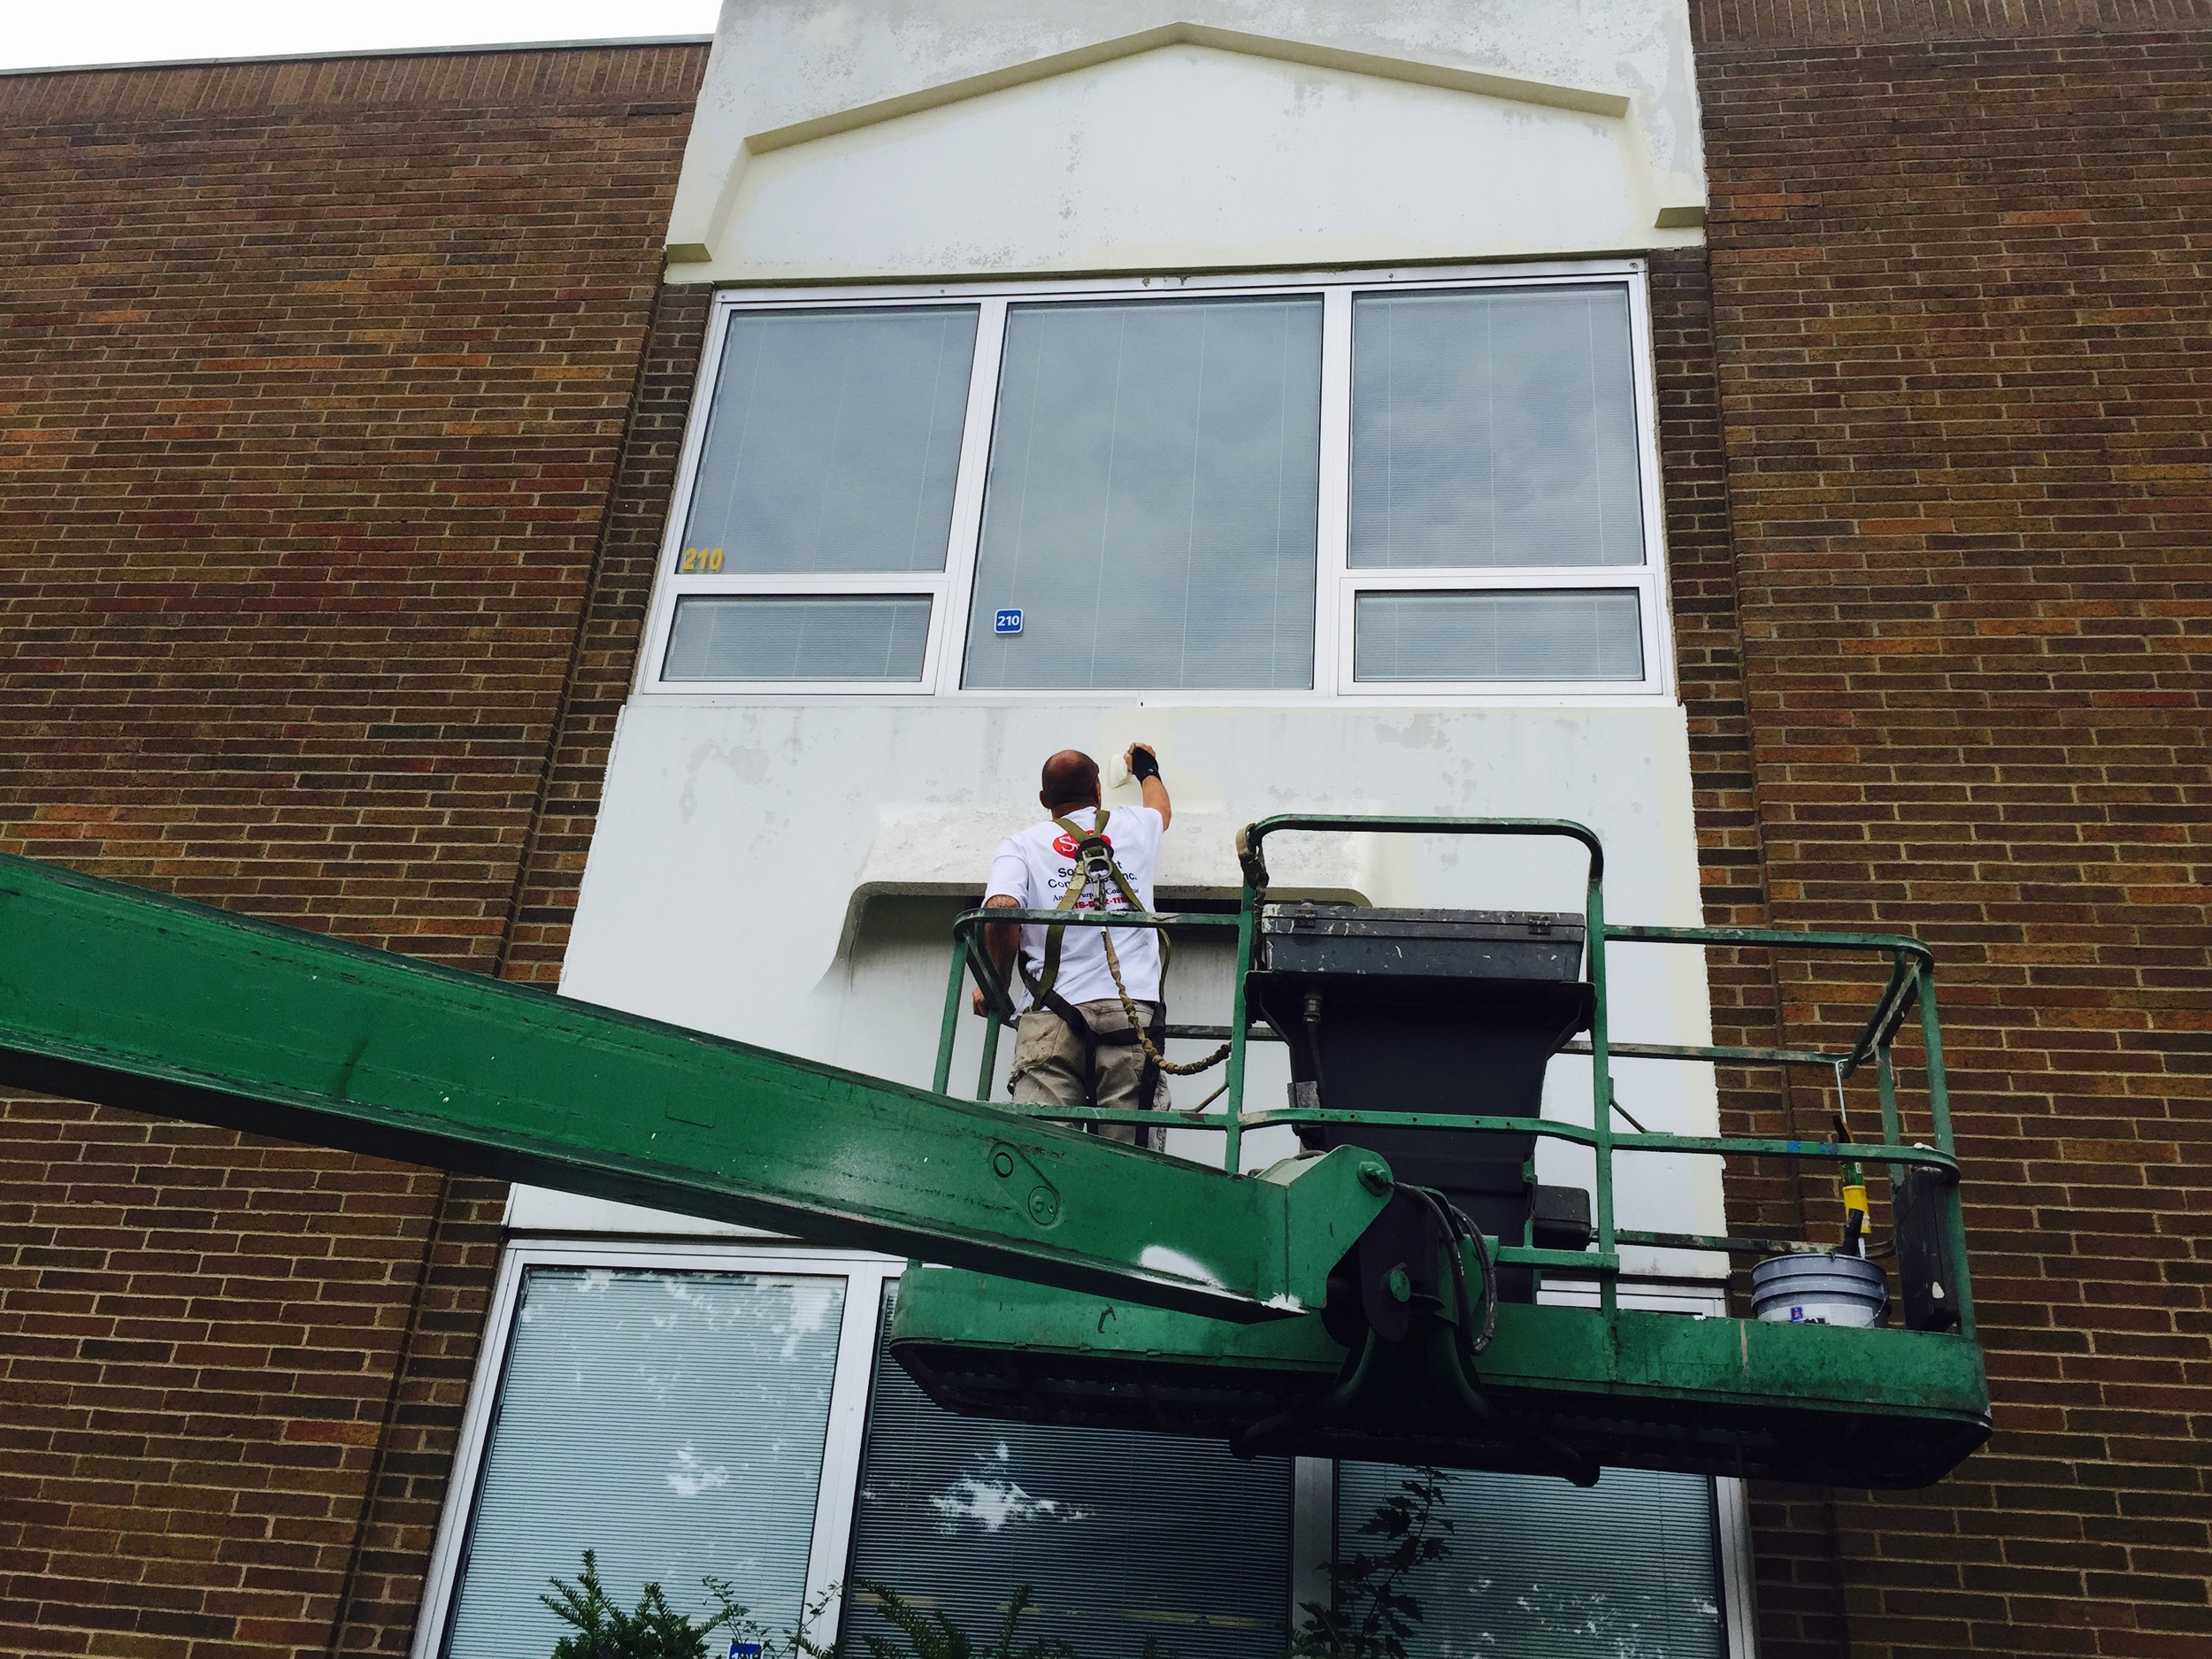 Achieve remarkable results with dry weather painting,free from spring rain and the summer's humidity.